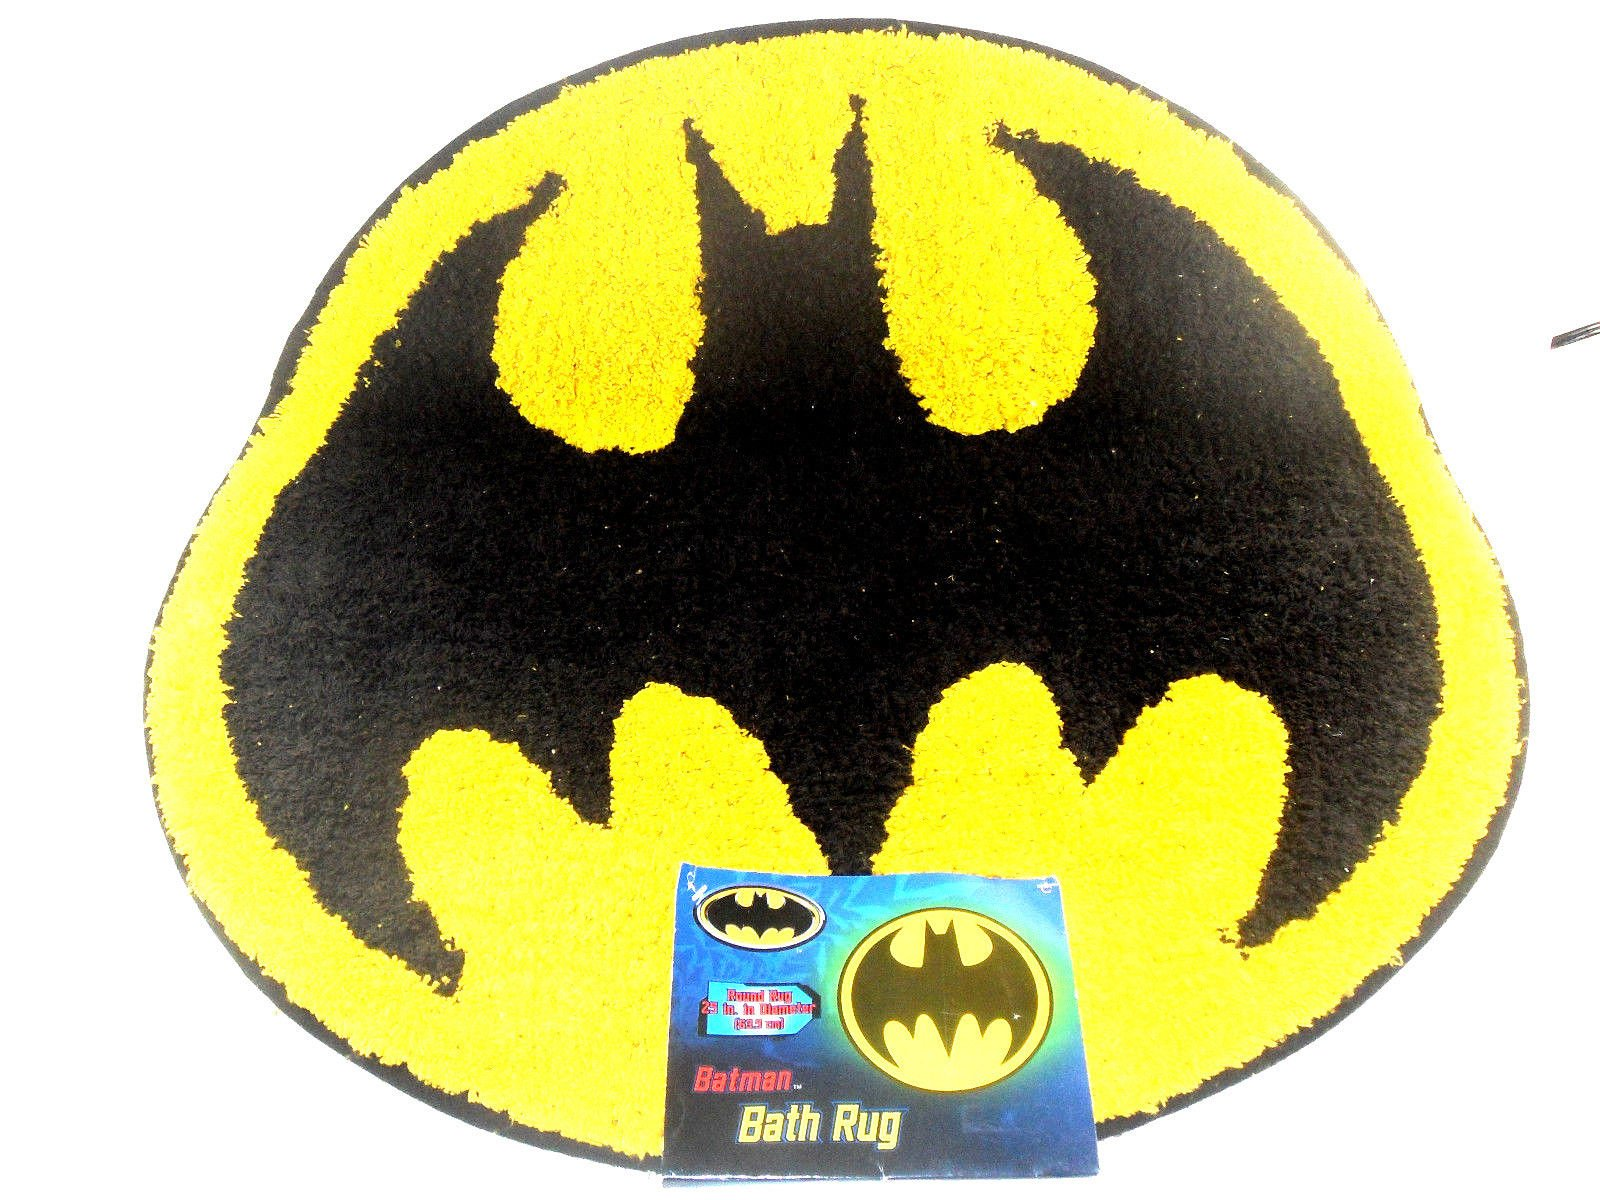 Batman Bathroom Set, Shower Curtain, Hooks, Bath Rug, Bath Towel, Pump Lotion, Toothbrush Holder by Batman (Image #7)